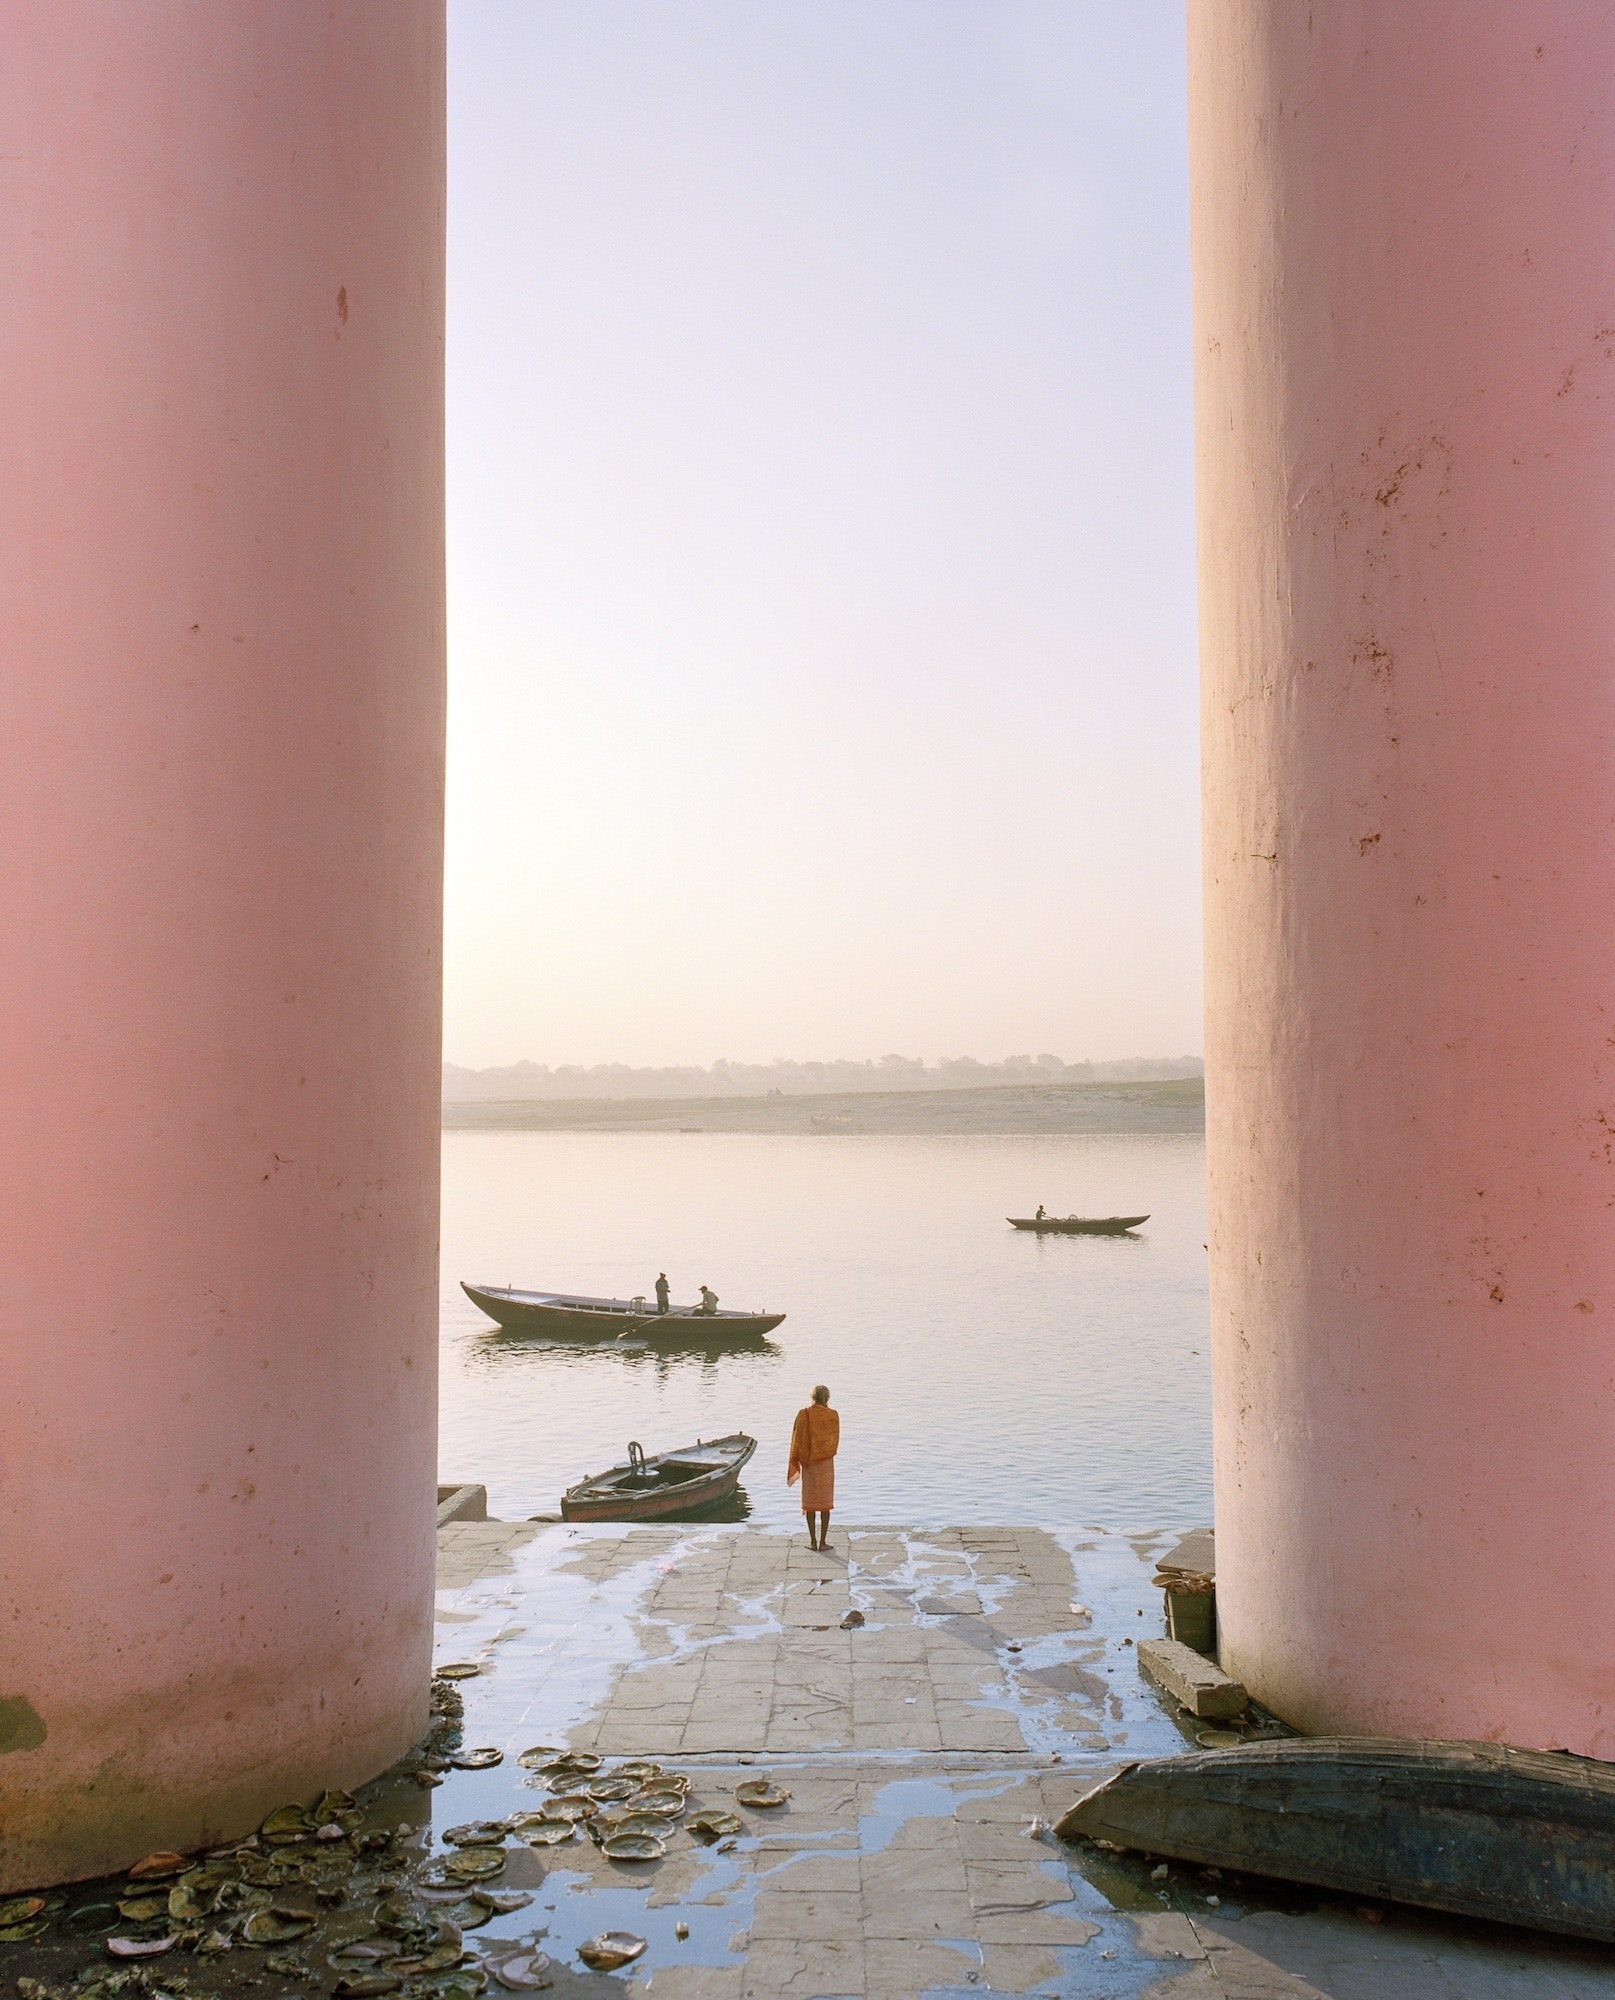 A monk greets the dawn on the Ganges River in Varanasi.